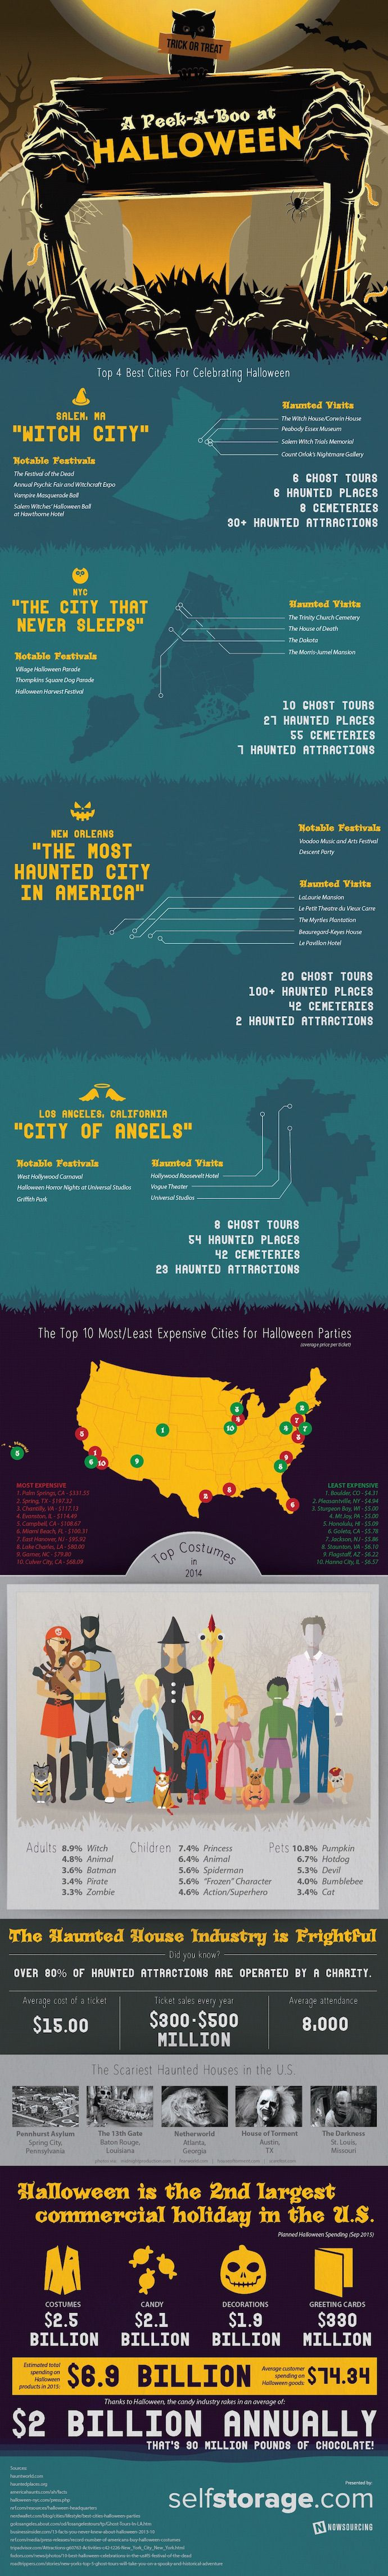 A Peek-A-Boo at Halloween #infographic